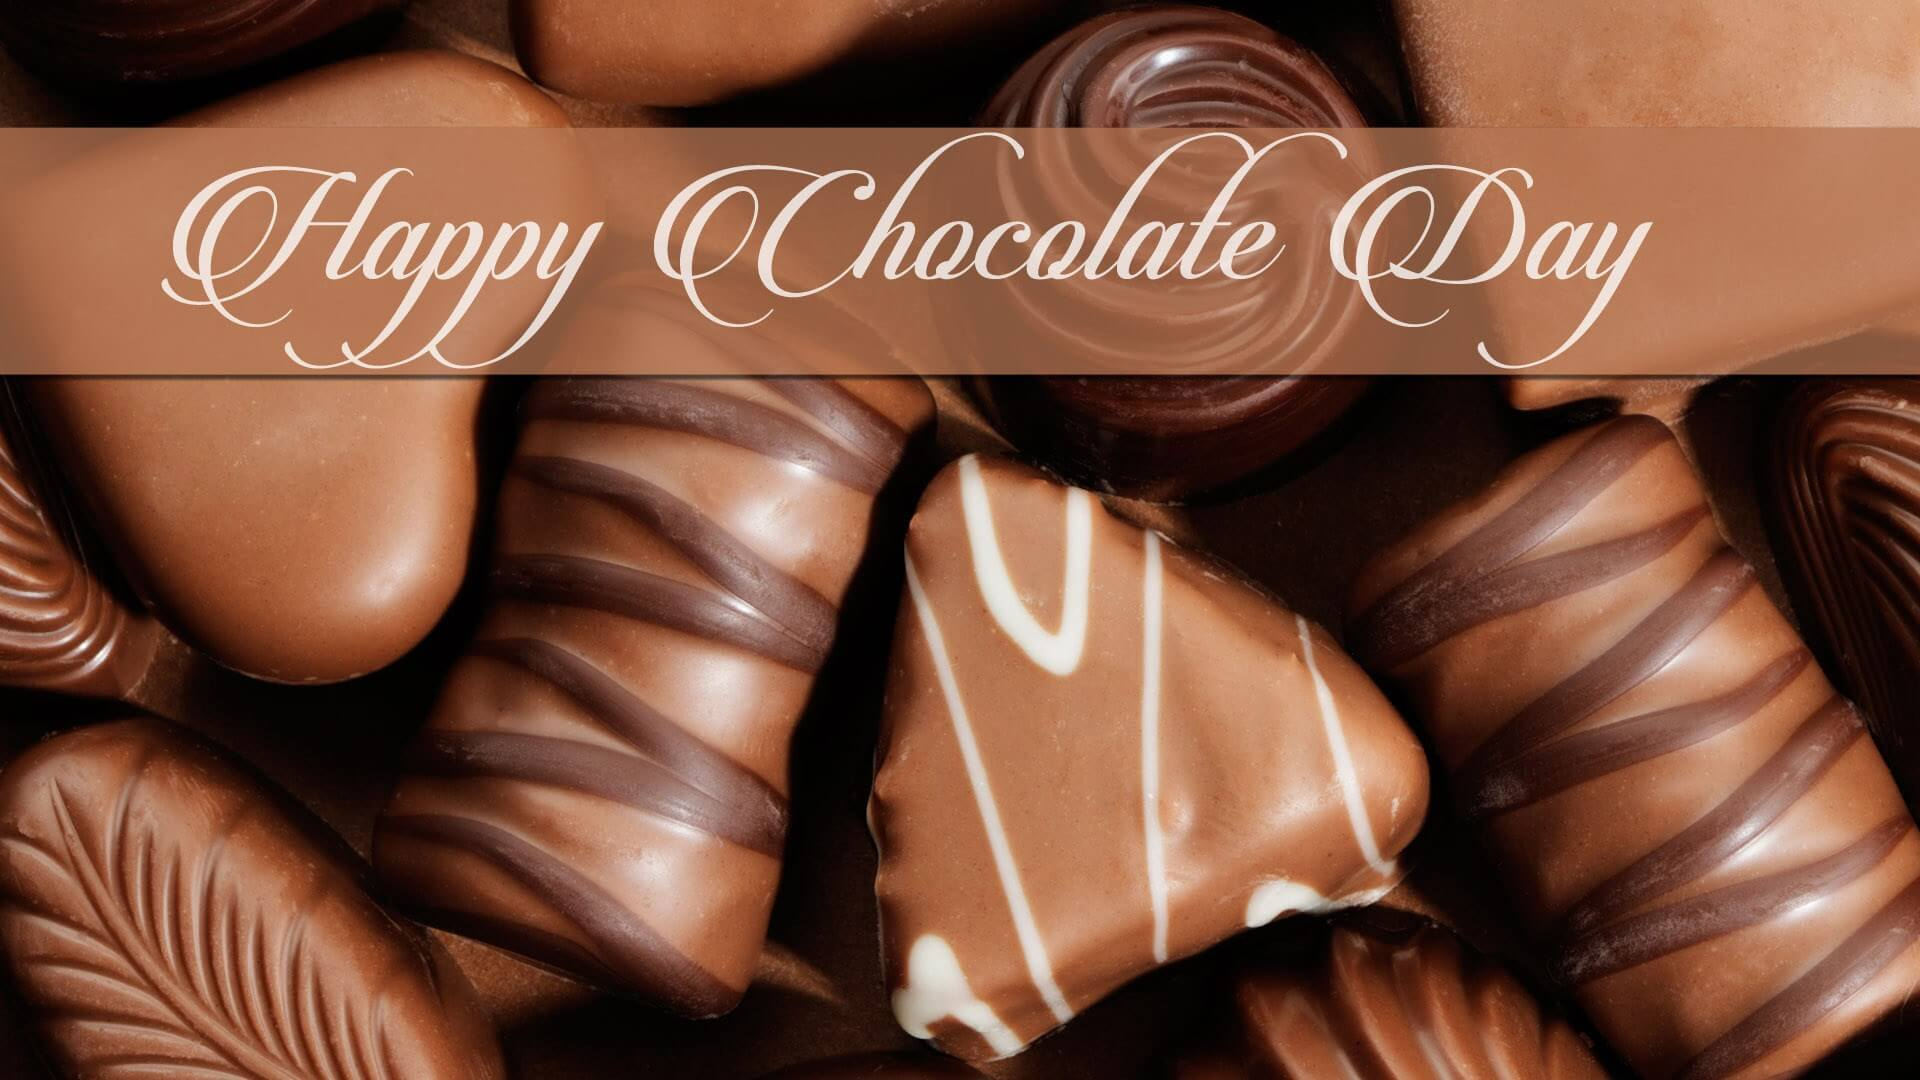 happy chocolate day wishes greetings heart love image desktop whatsapp facebook hd wallpaper